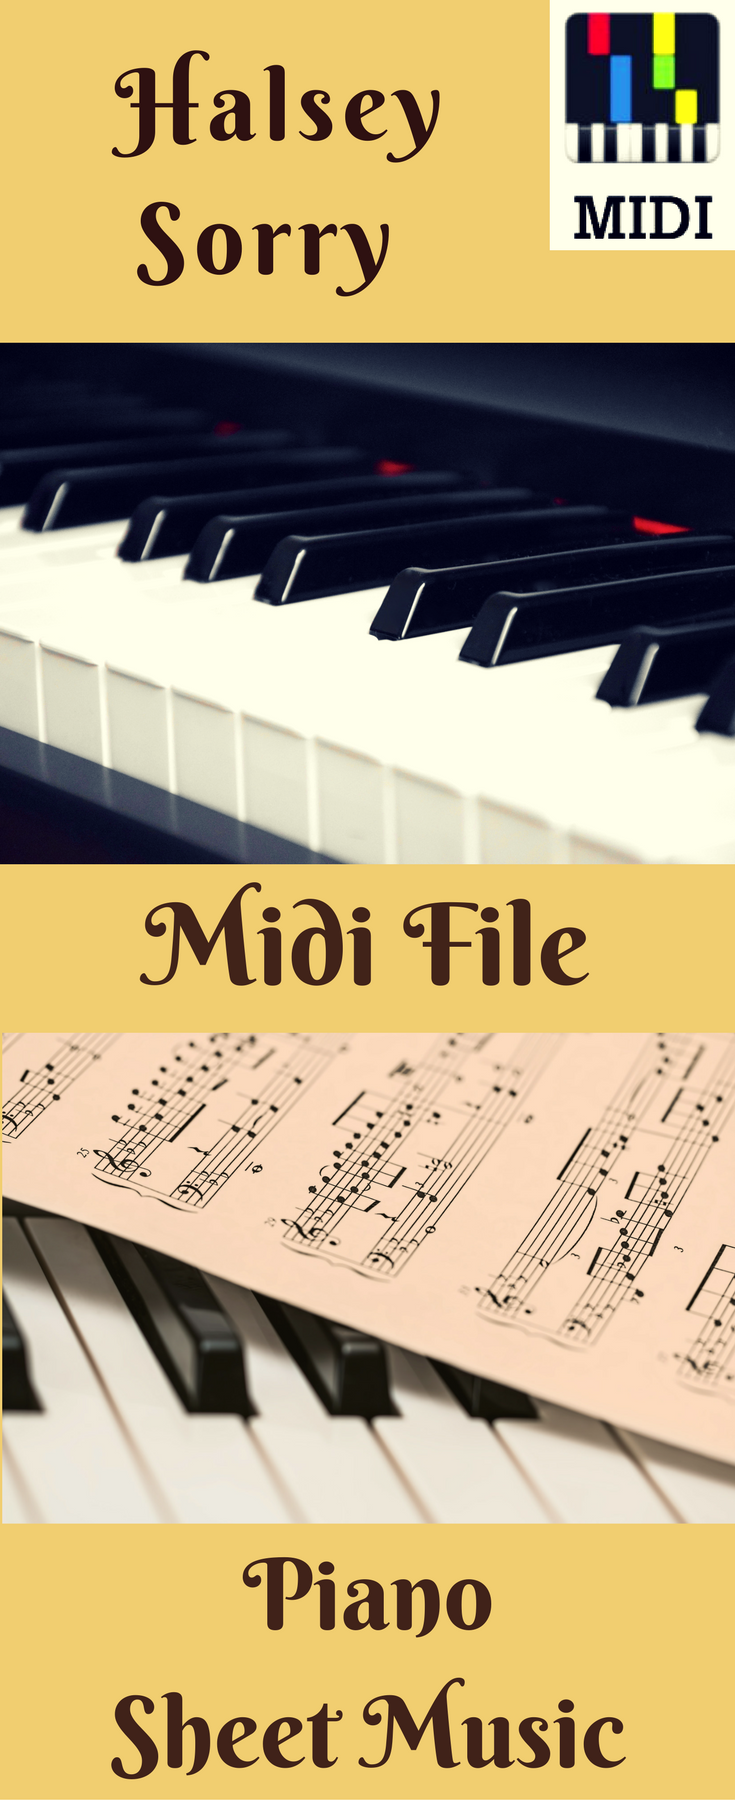 louis armstrong midi files free download